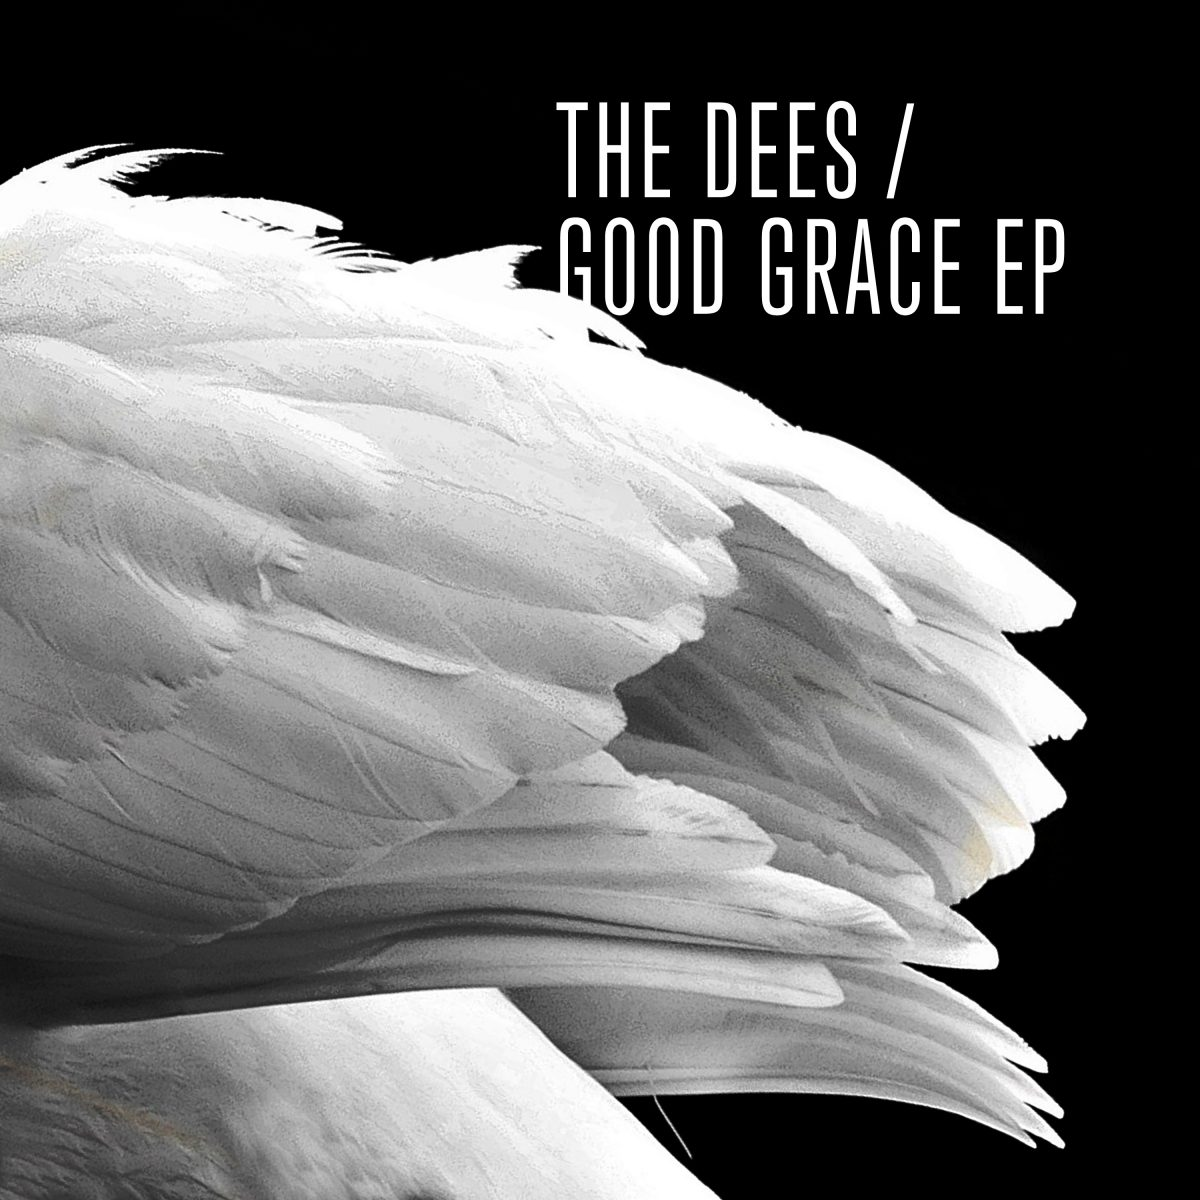 Good Grace - an EP by The Dees.